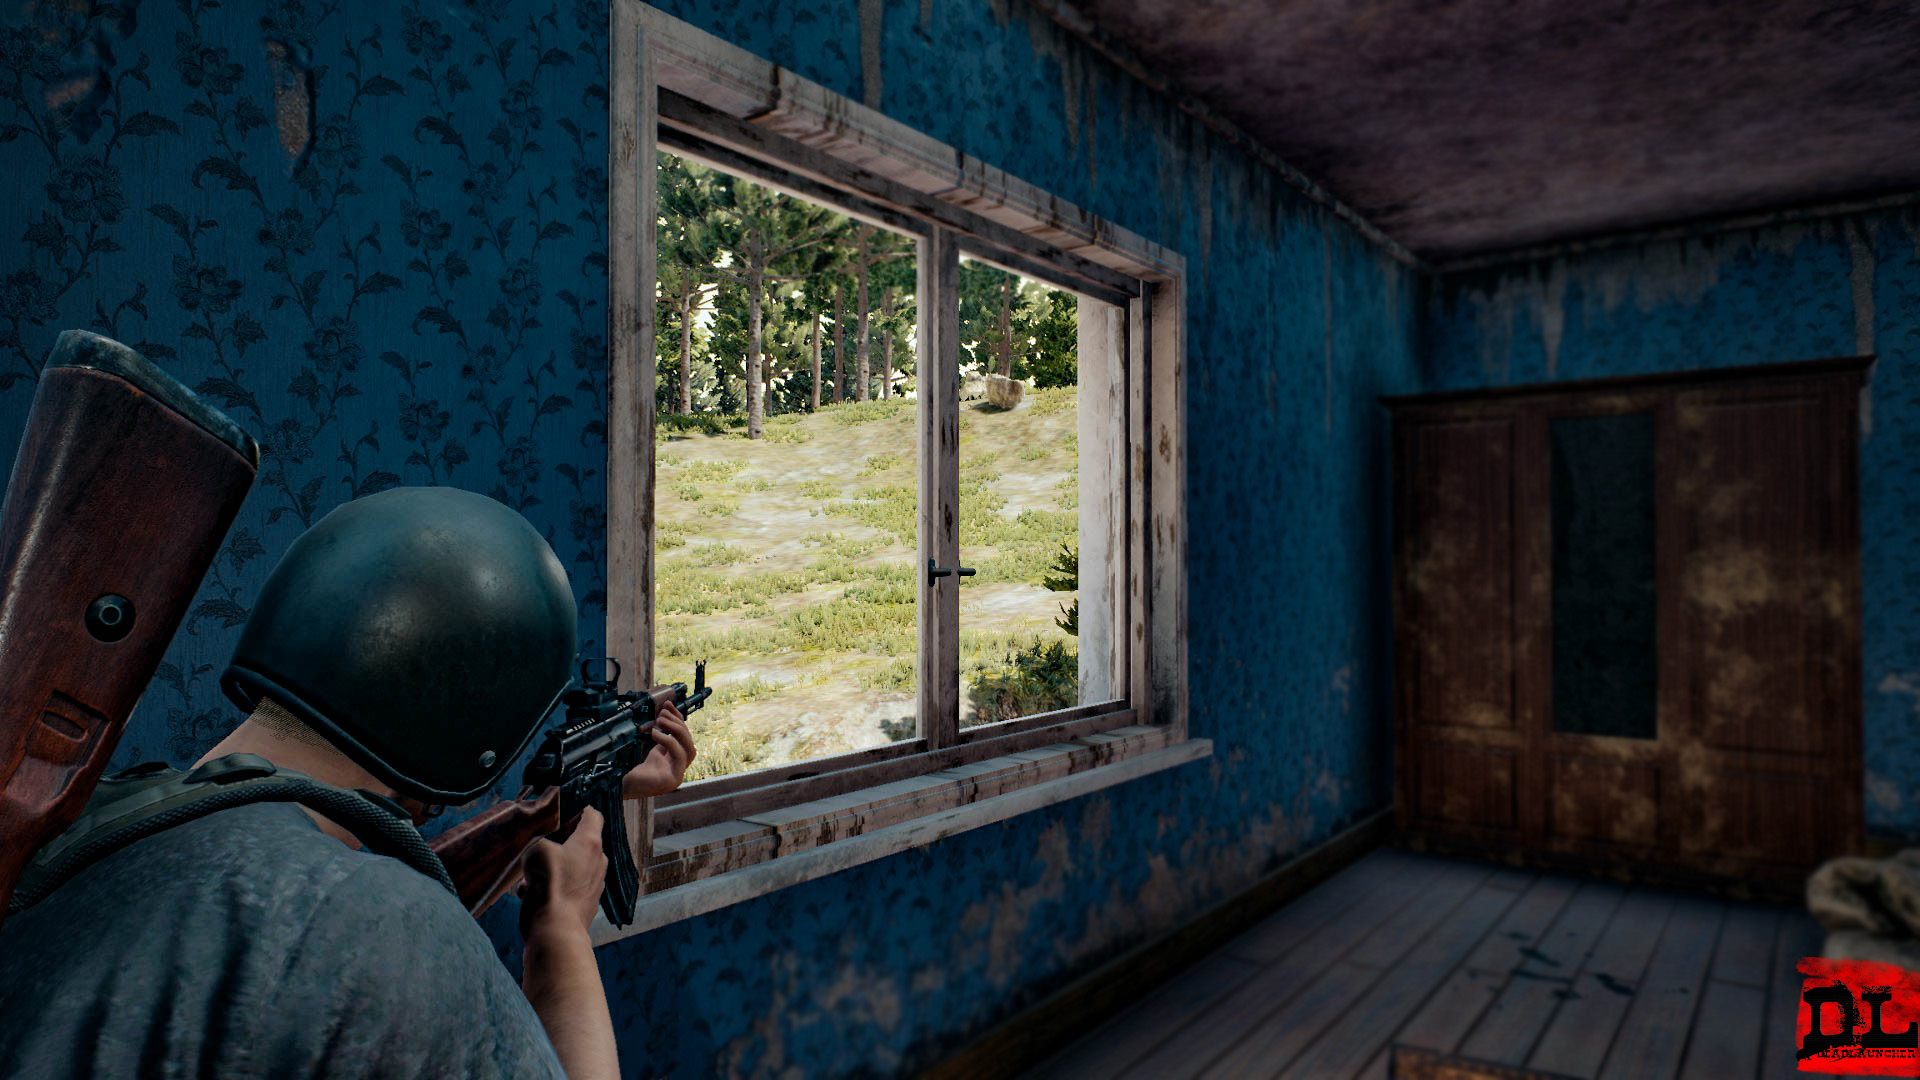 20171114215016_3.jpg - PlayerUnknown's Battlegrounds